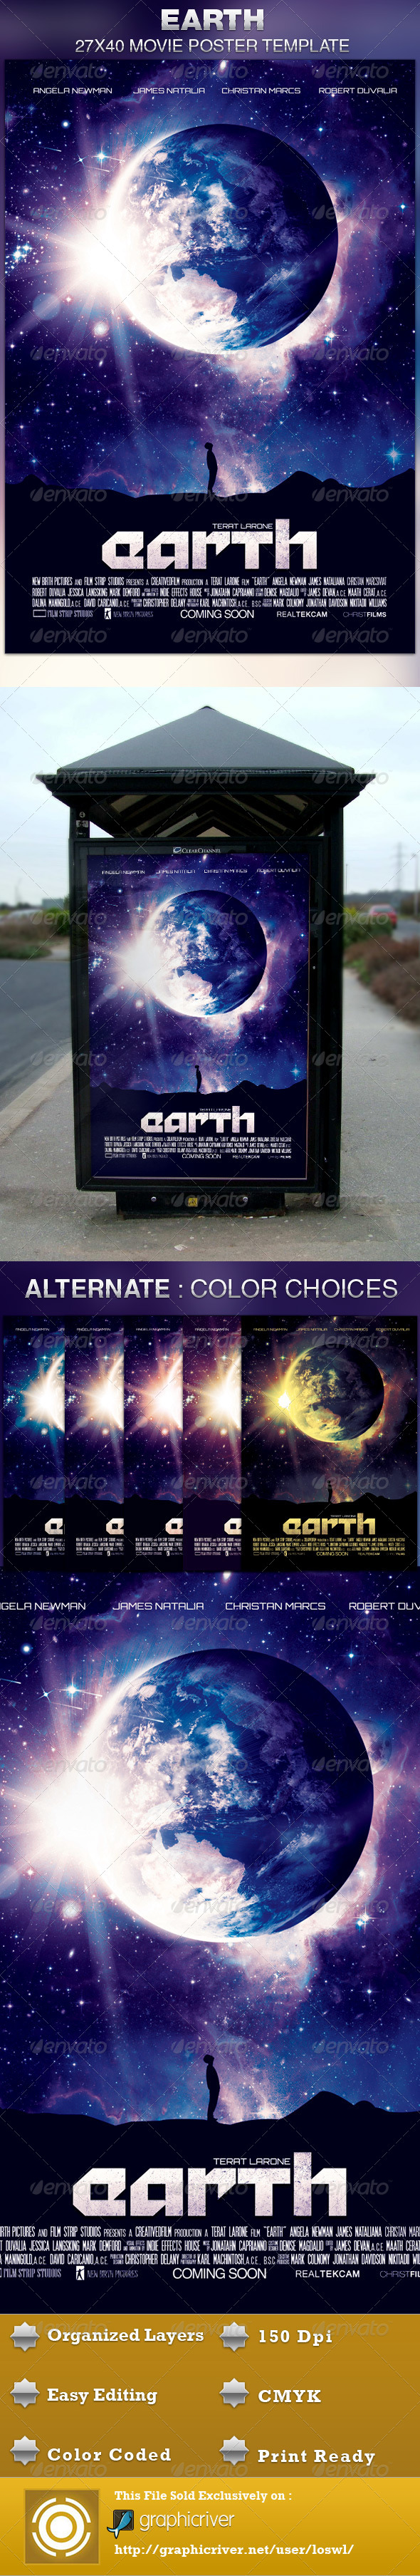 Earth Movie Poster Template - Church Flyers